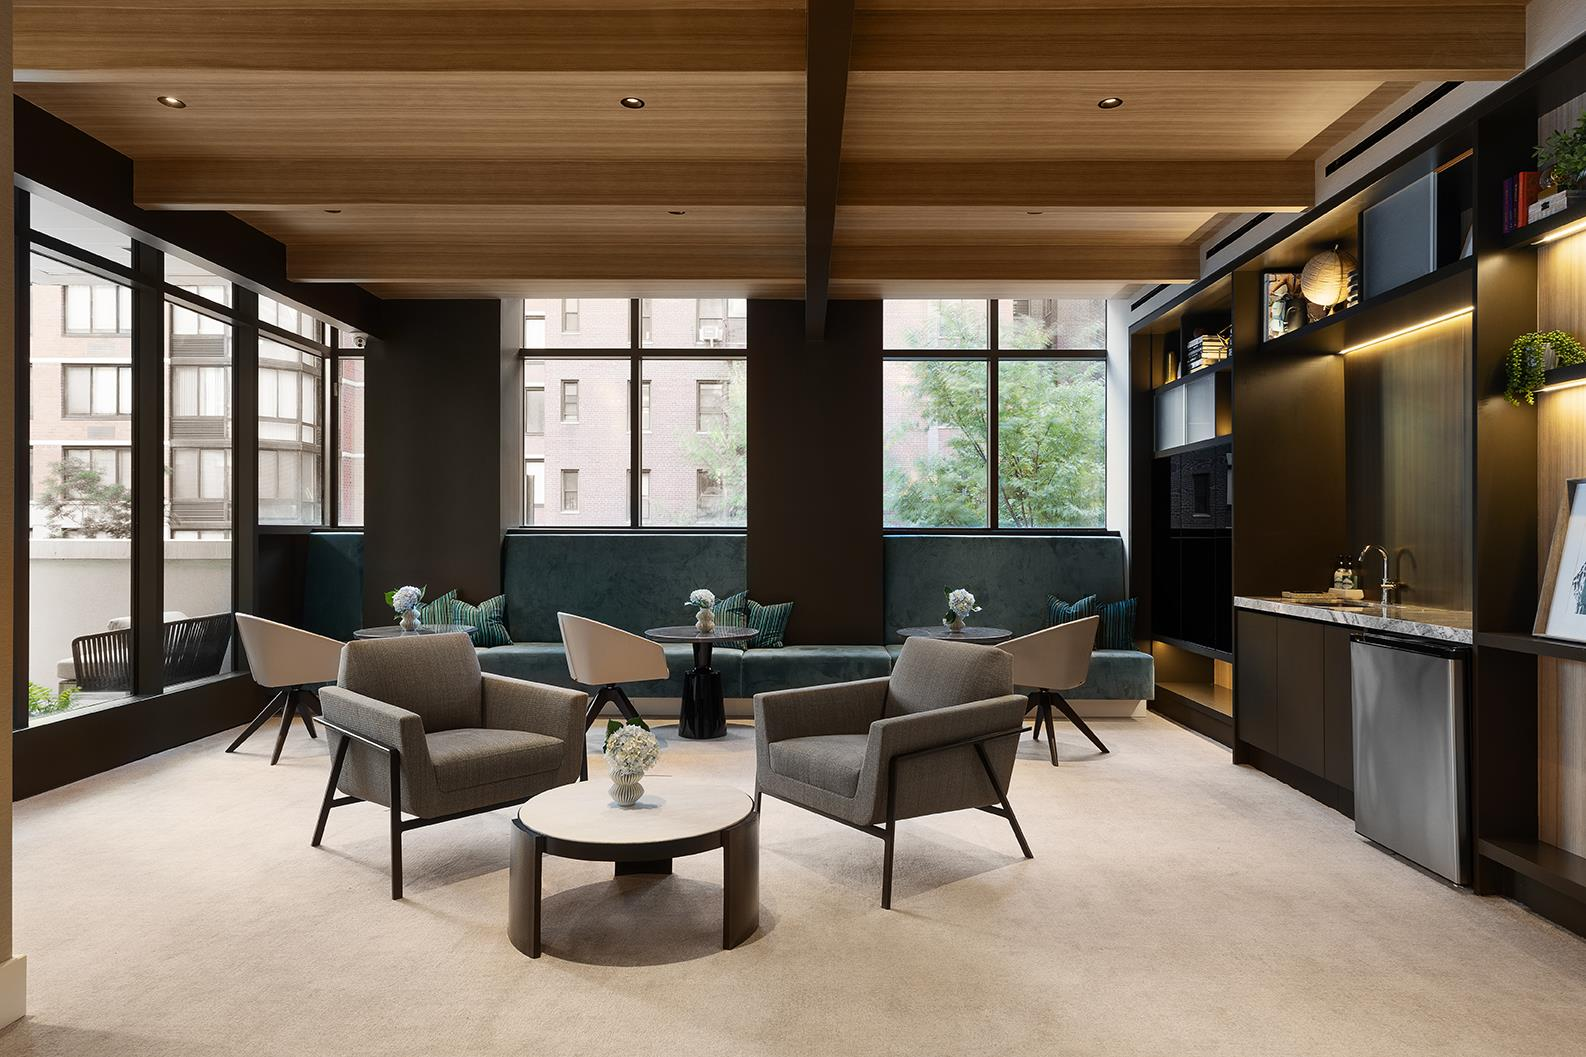 Apartment for sale at 212 West 95th Street, Apt 7-B